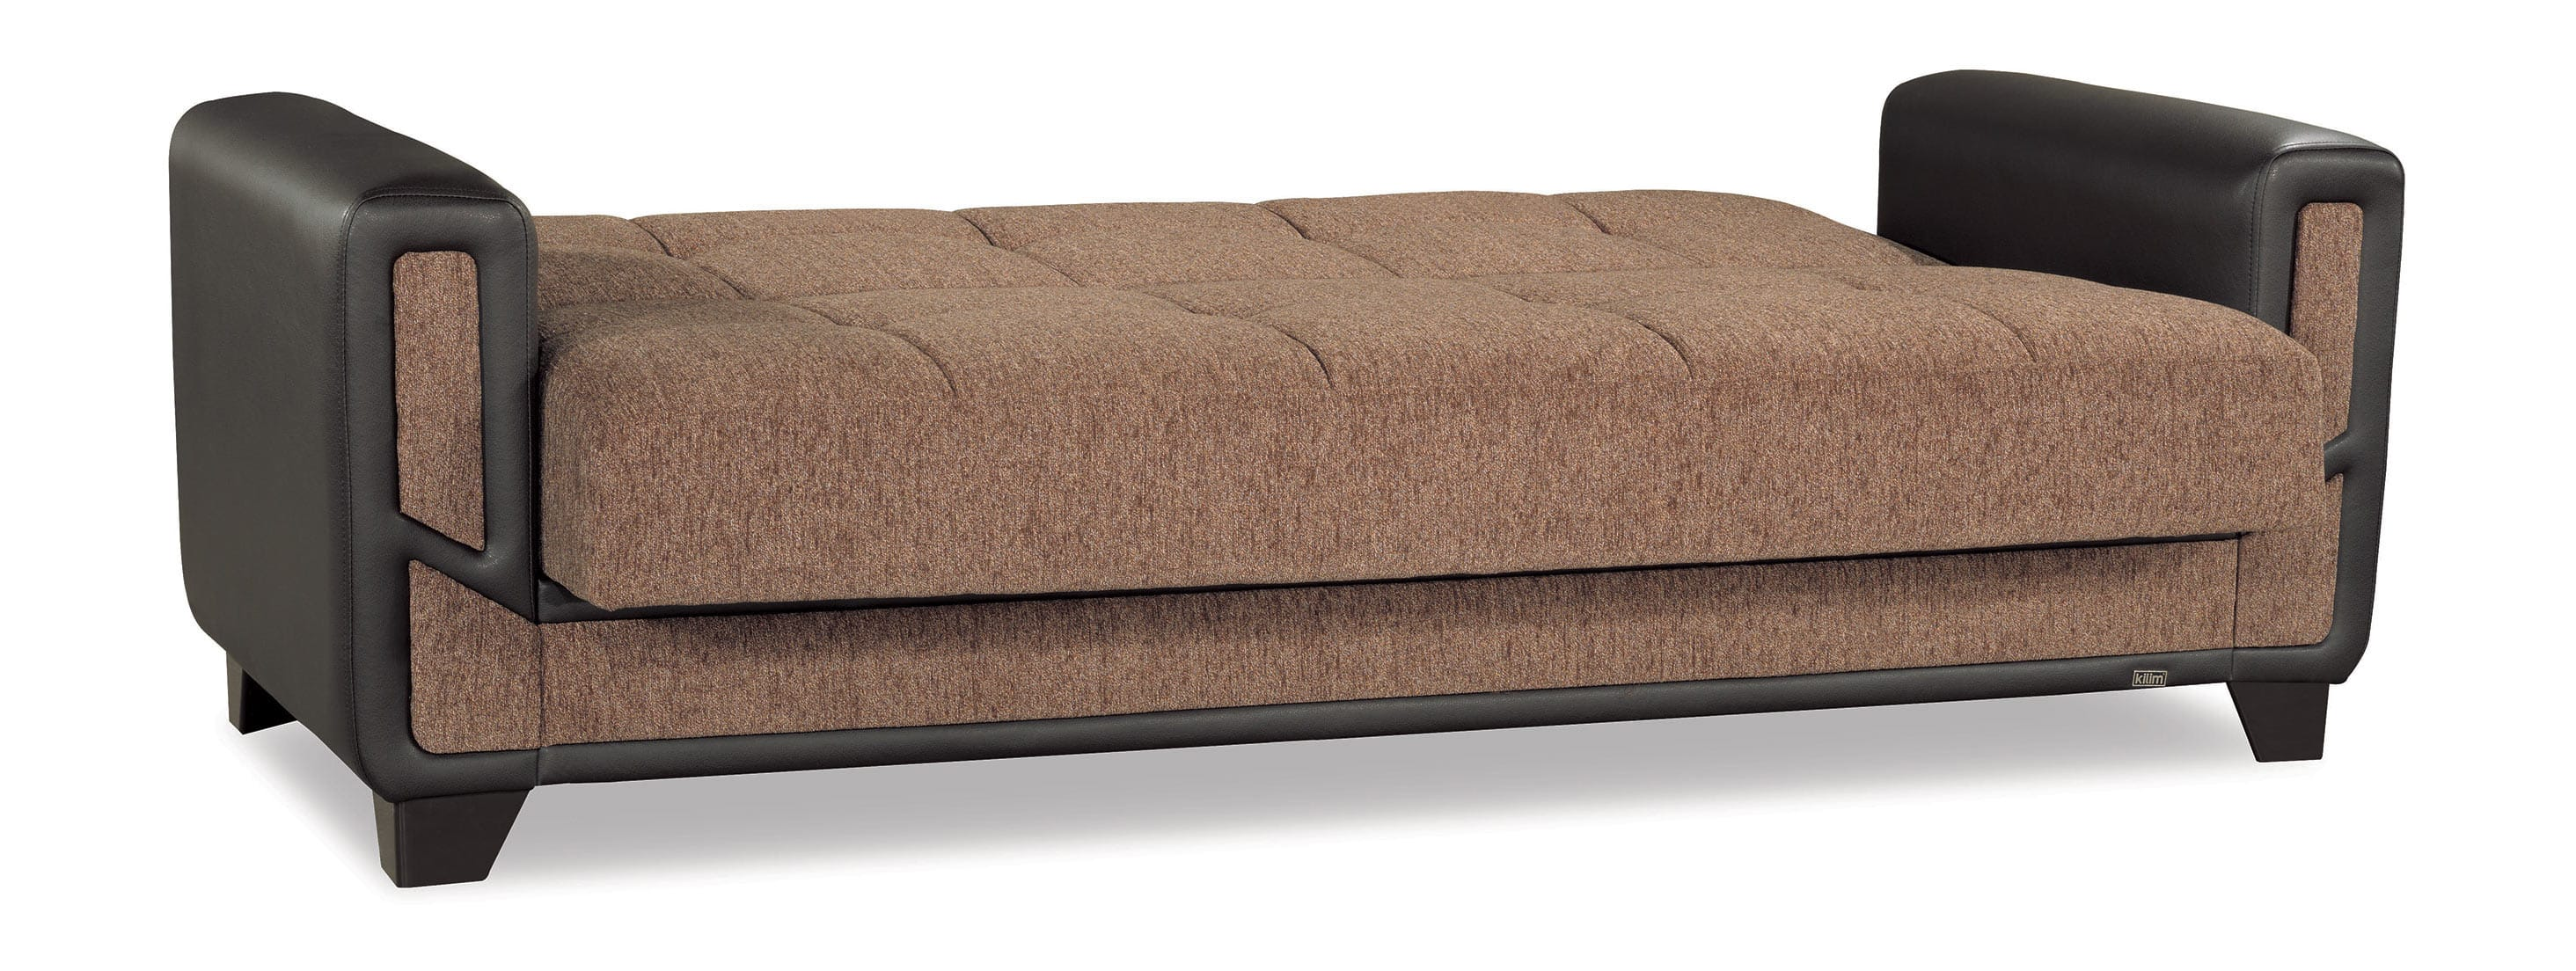 convertible sofa beds new york luxury leather collection polaris mondo modern brown bed by casamode